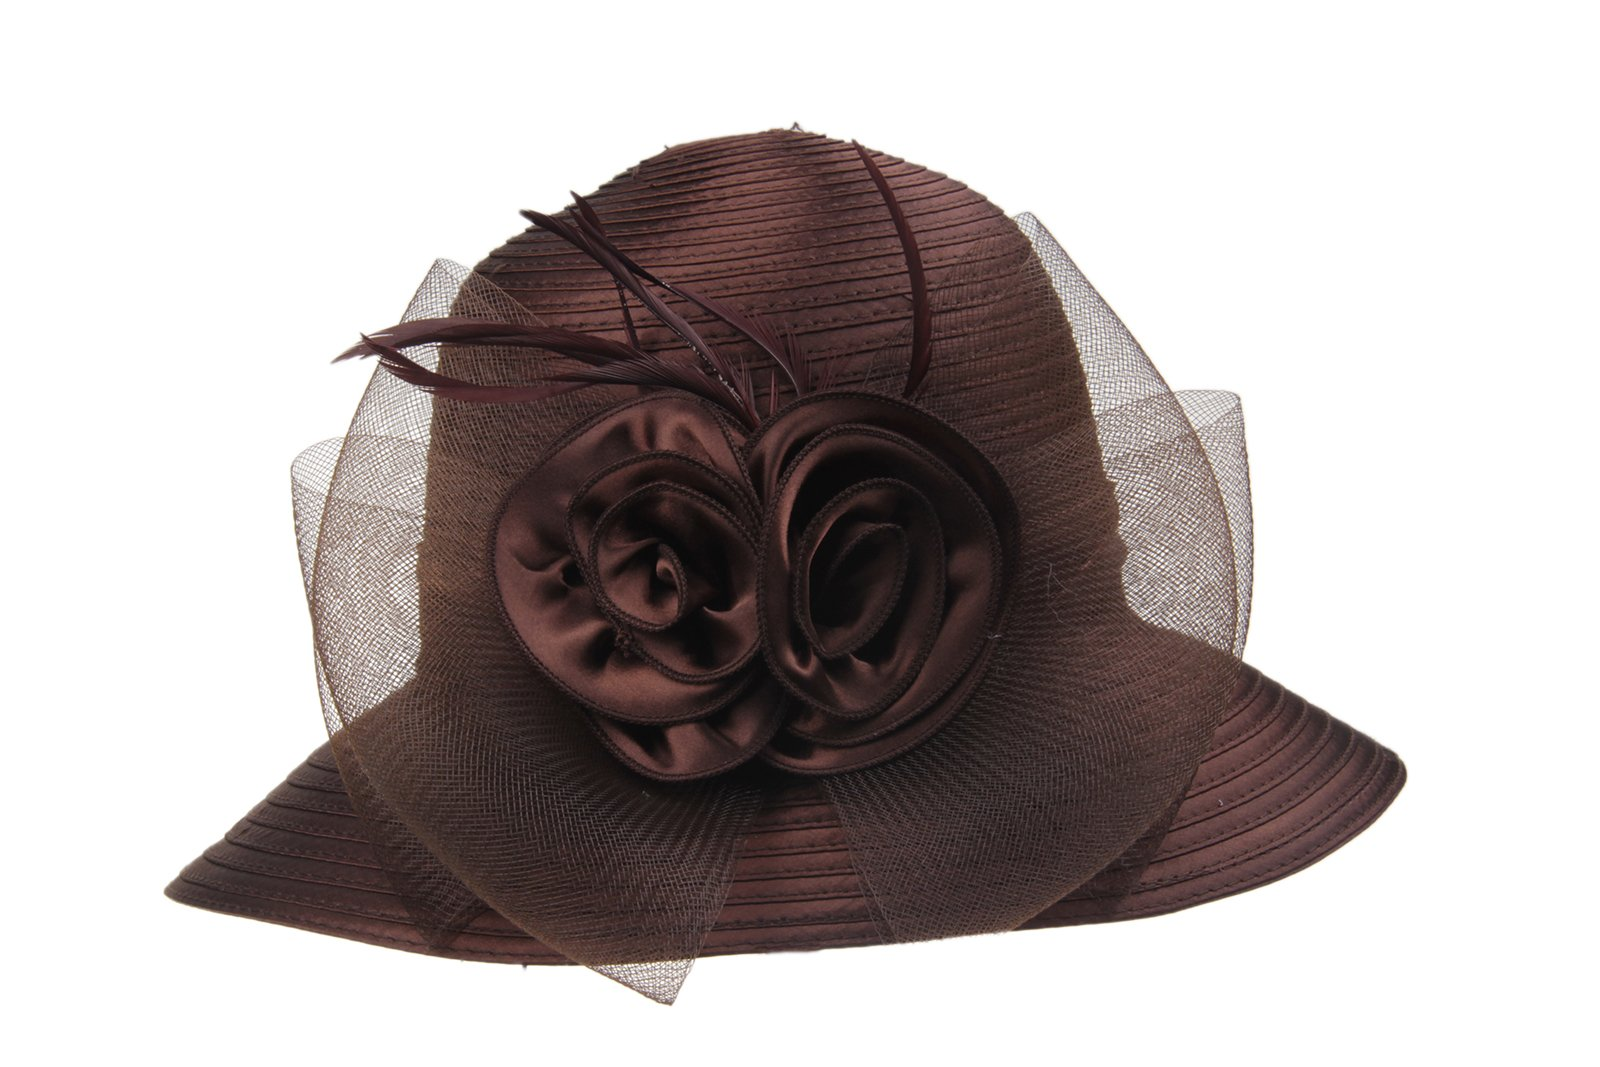 Prefe Lady's Kentucky Derby Dress Church Cloche Hat Bow Bucket Wedding Bowler Hats (Brown, One Size)